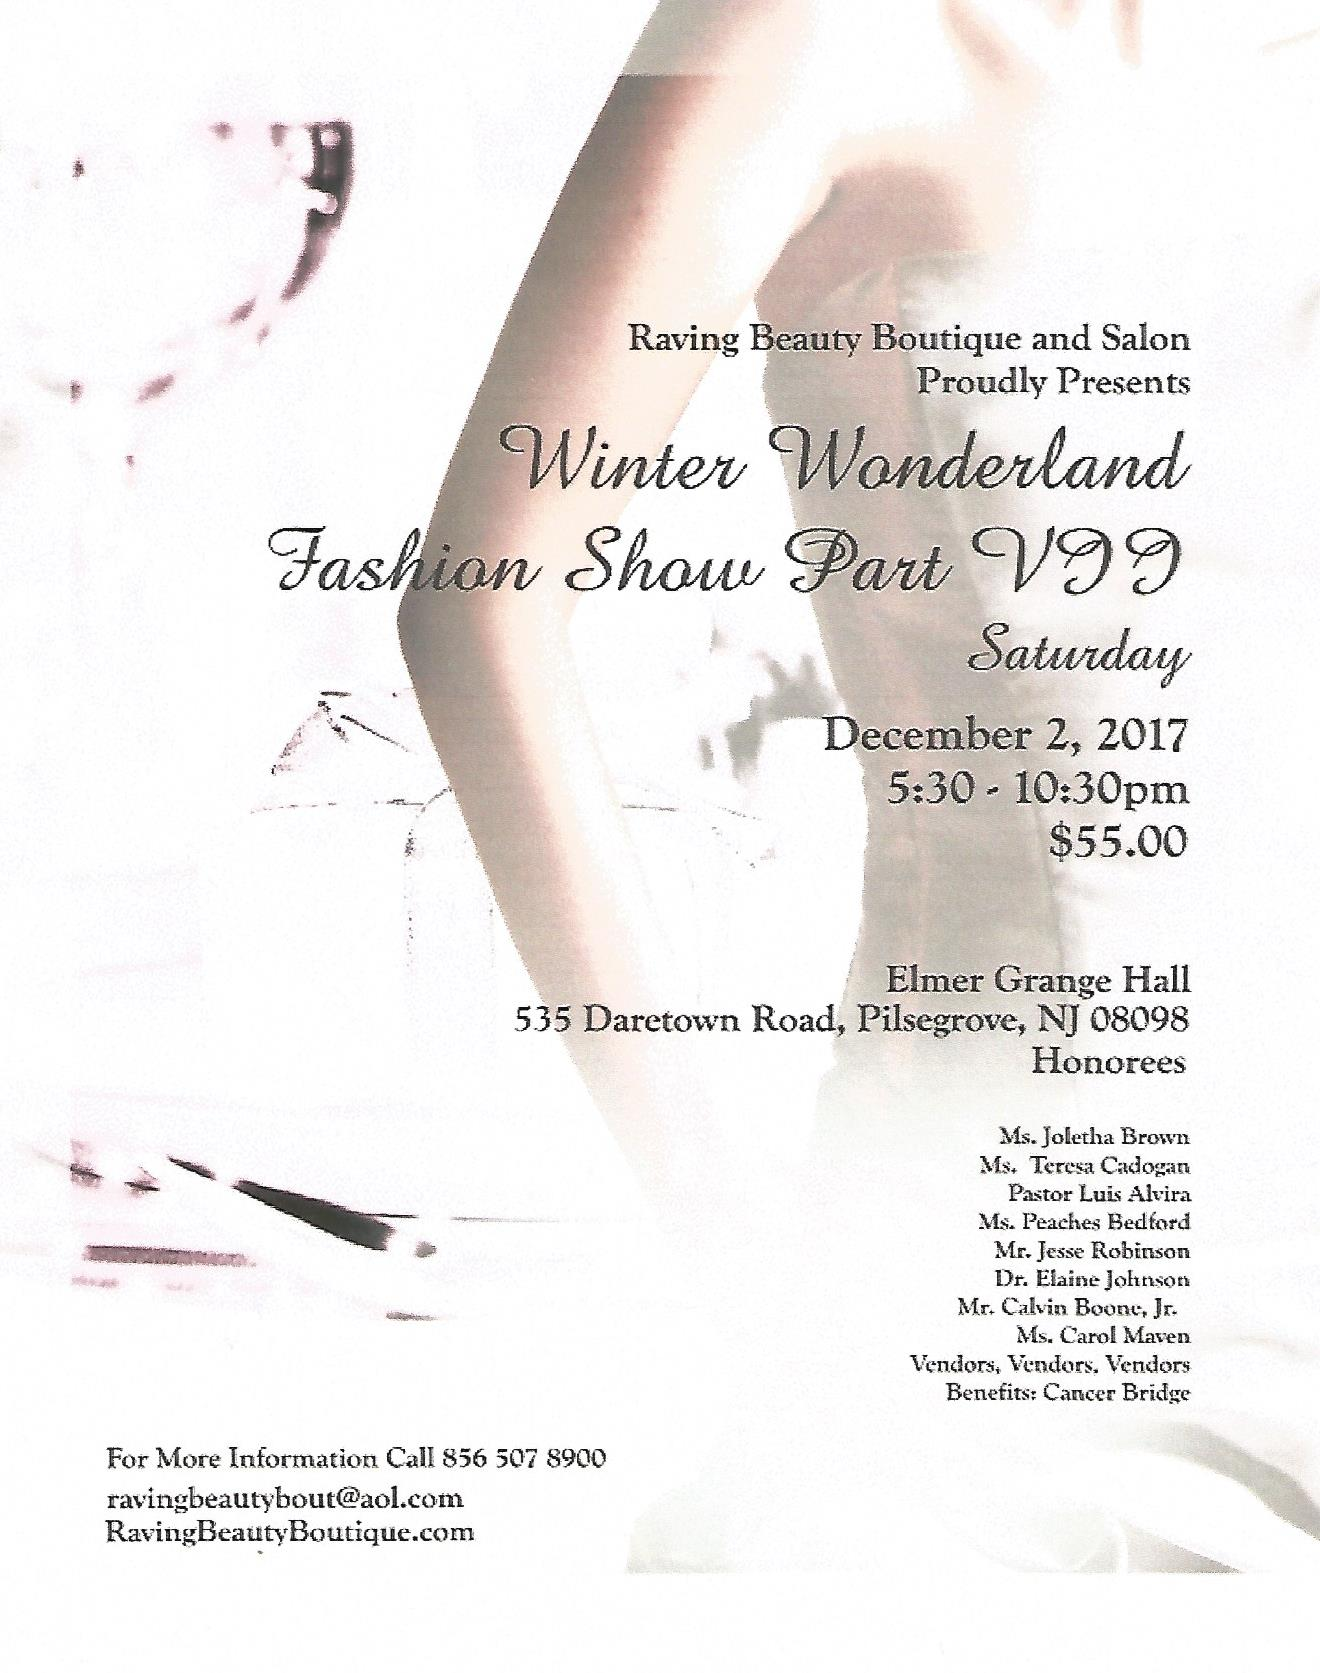 Winter Wonderland Fashion Show